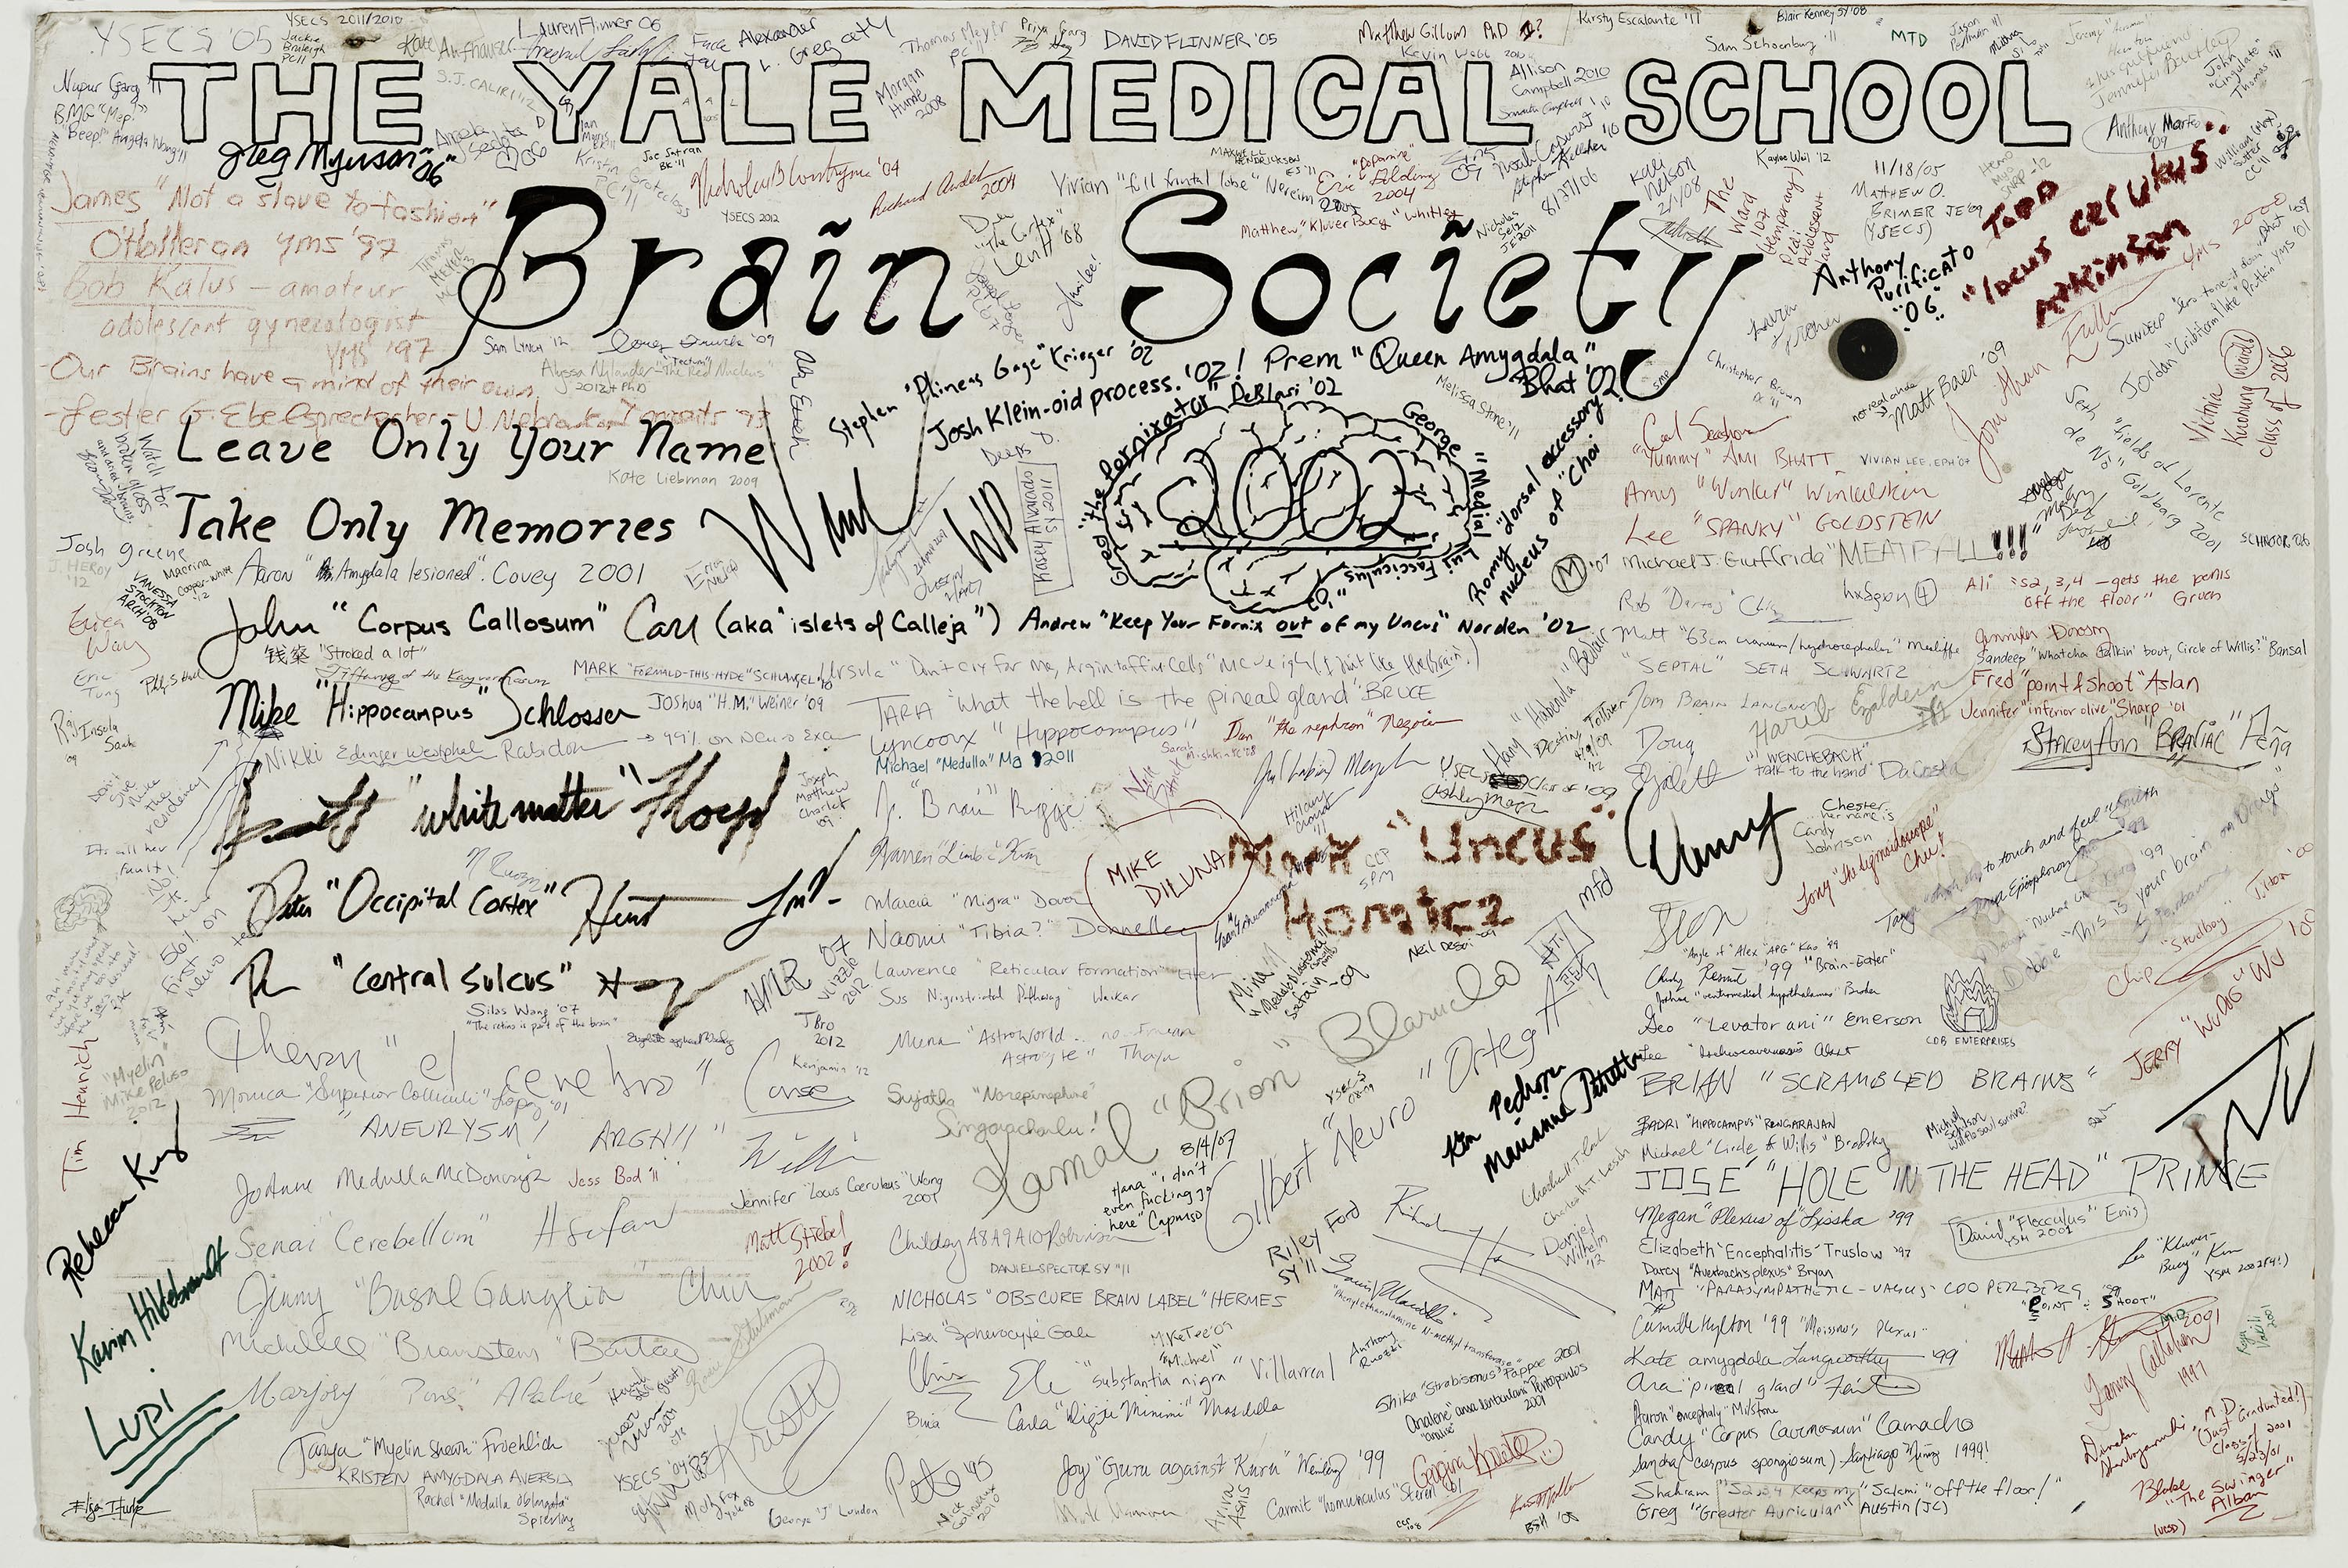 Scan of the brain society 2002